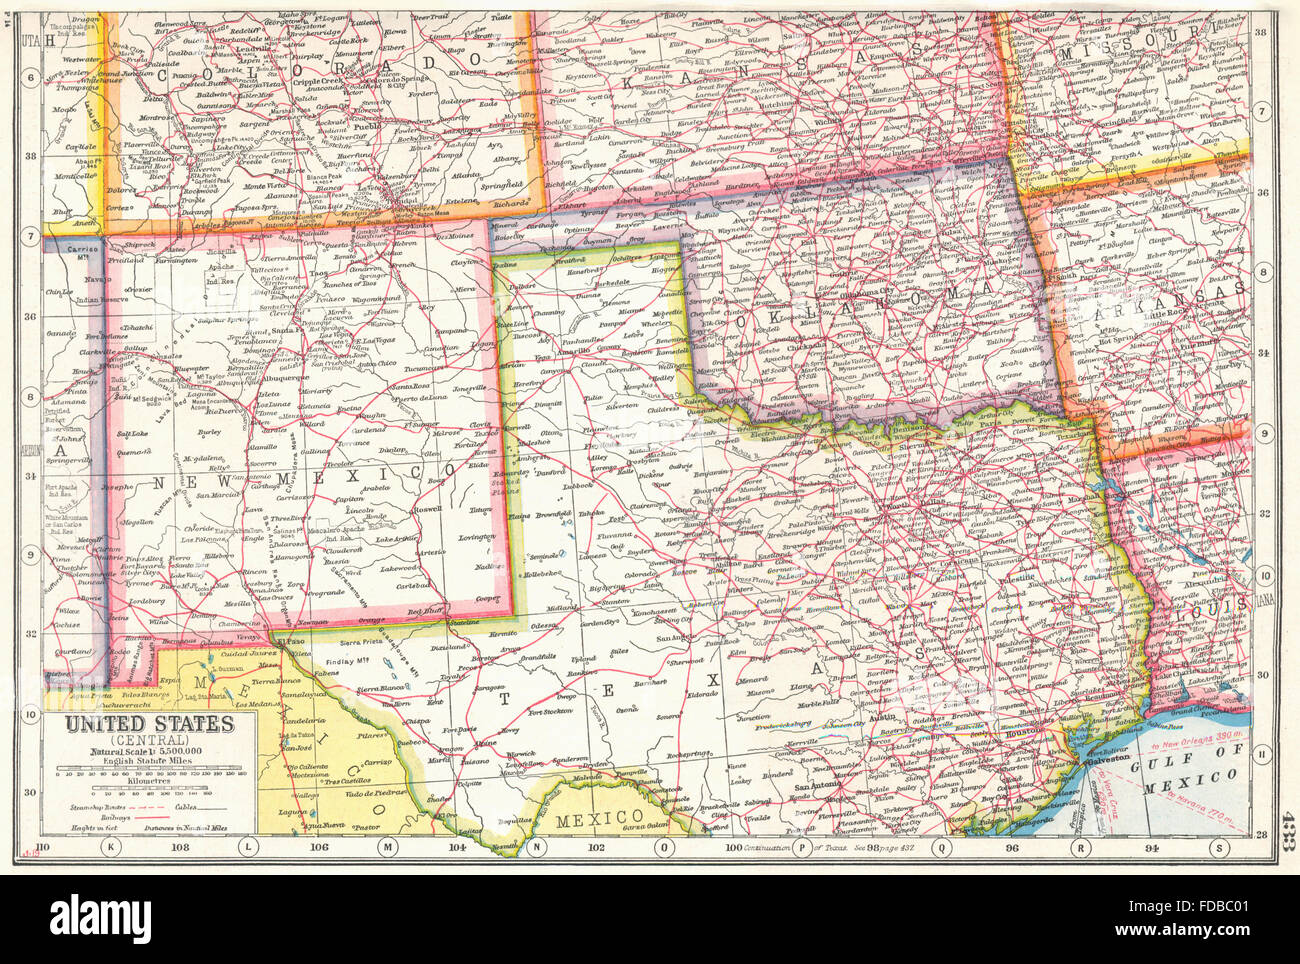 Map Of Texas And New Mexico USA SOUTH CENTRE: New Mexico Oklahoma North Texas. HARMSWORTH